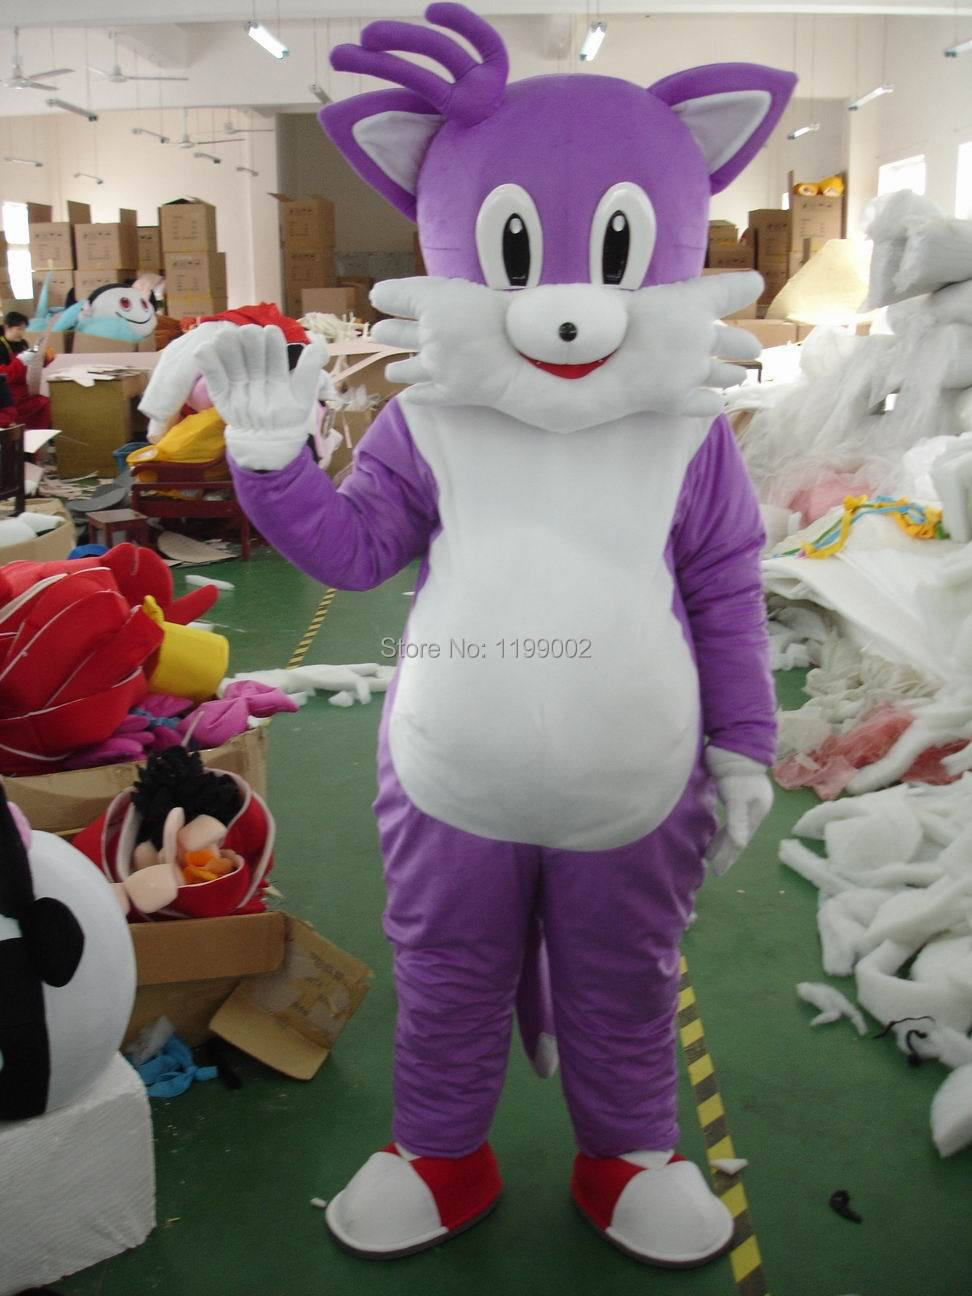 JJ's Party House carries Halloween costumes for children and adults plus birthday party supplies, balloons, accessories, theatrical makeup and decorations.